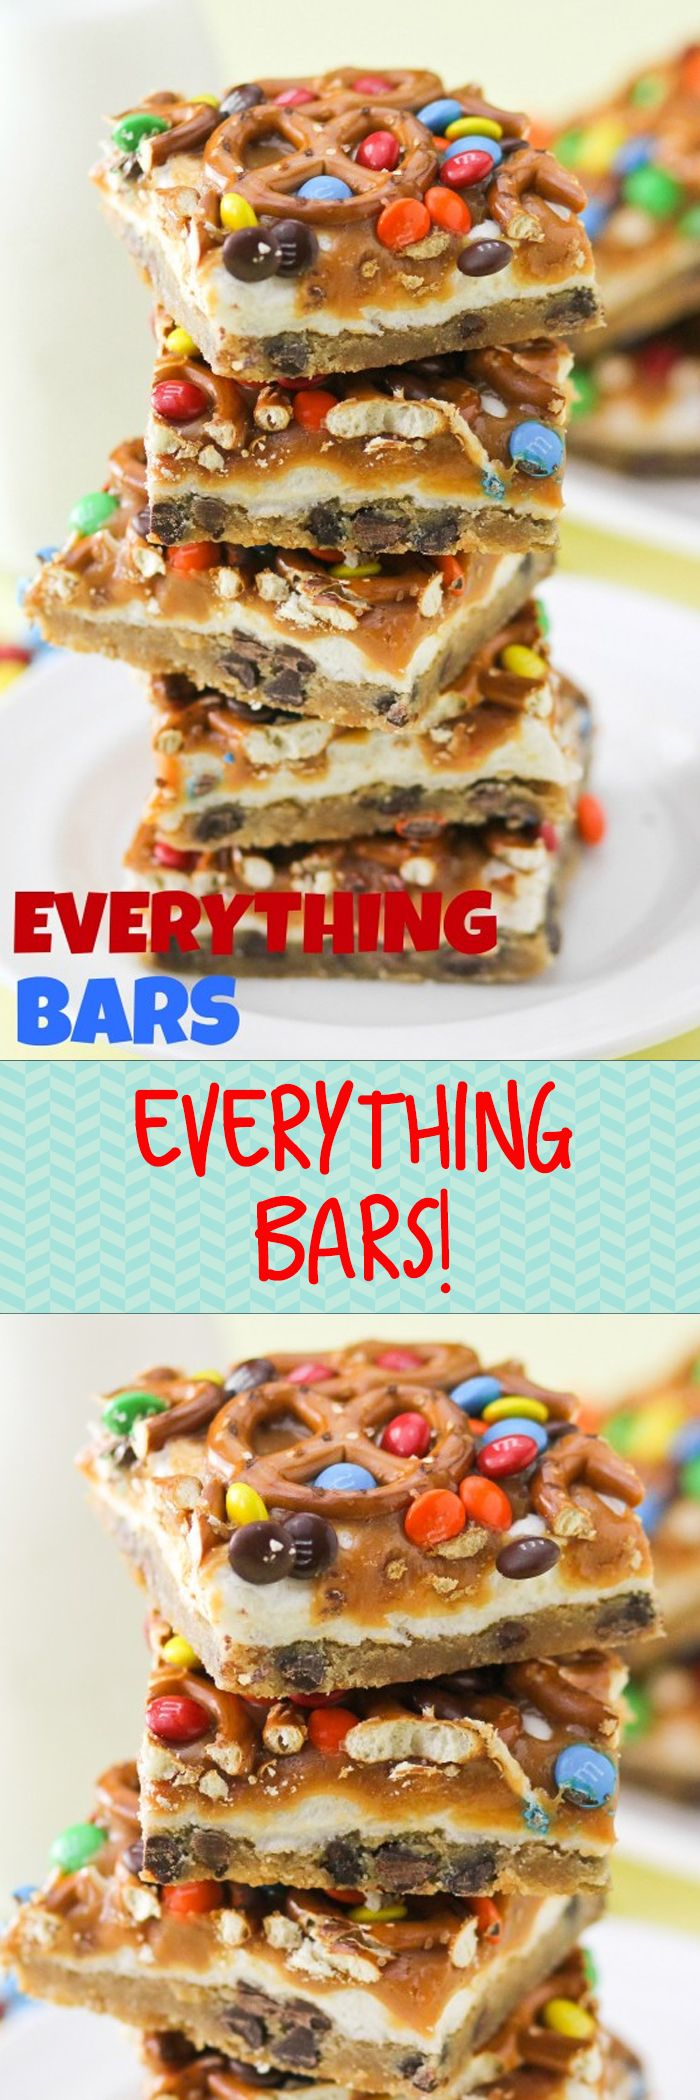 Everything Bars! I make these for almost every birthday and sleepover! Layers of chocolate chip cookie, marshmallow, caramel, pretzels and m&ms. SO incredibly easy and they taste AMAZING! Pretty and colorful, too!